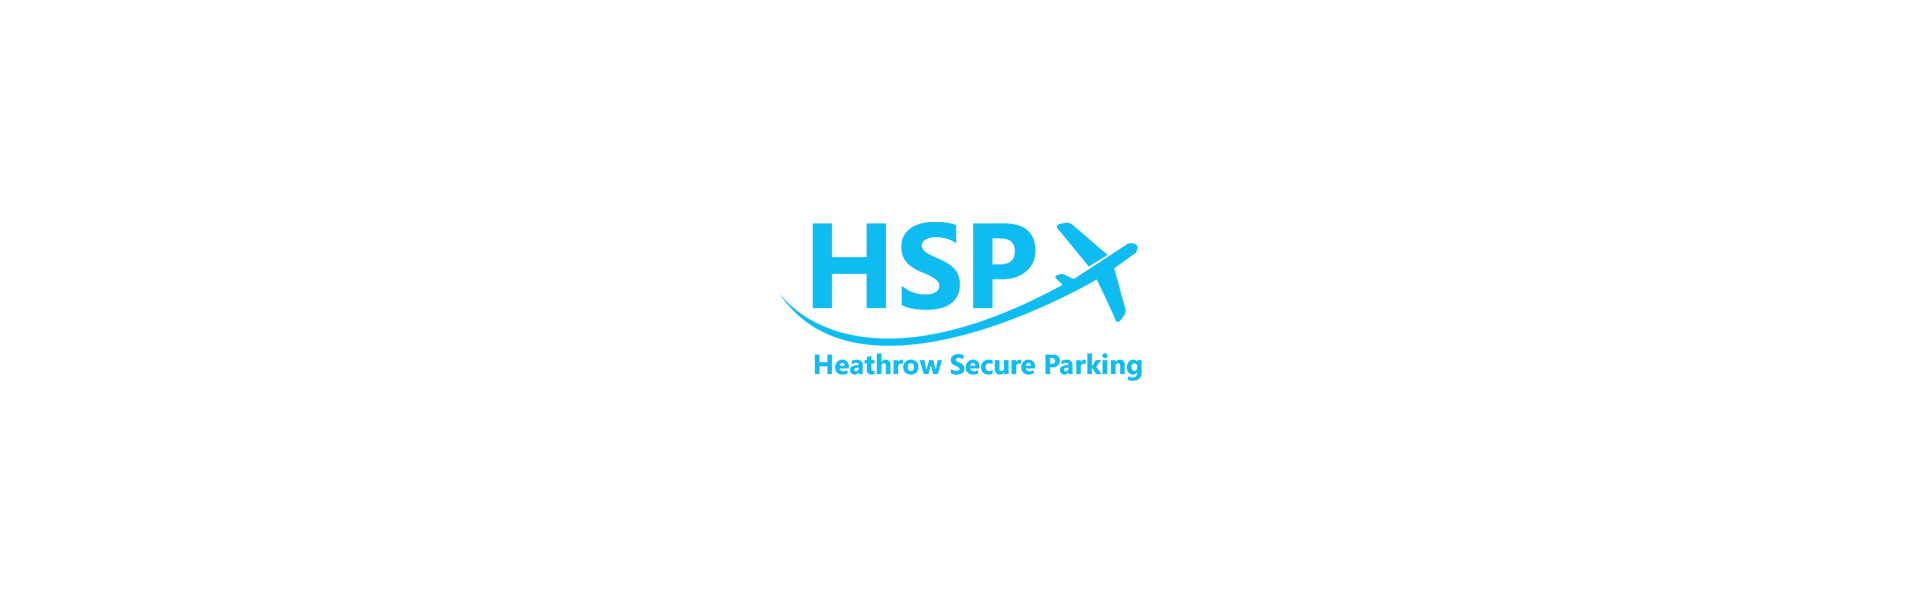 Heathrow Secure Parking